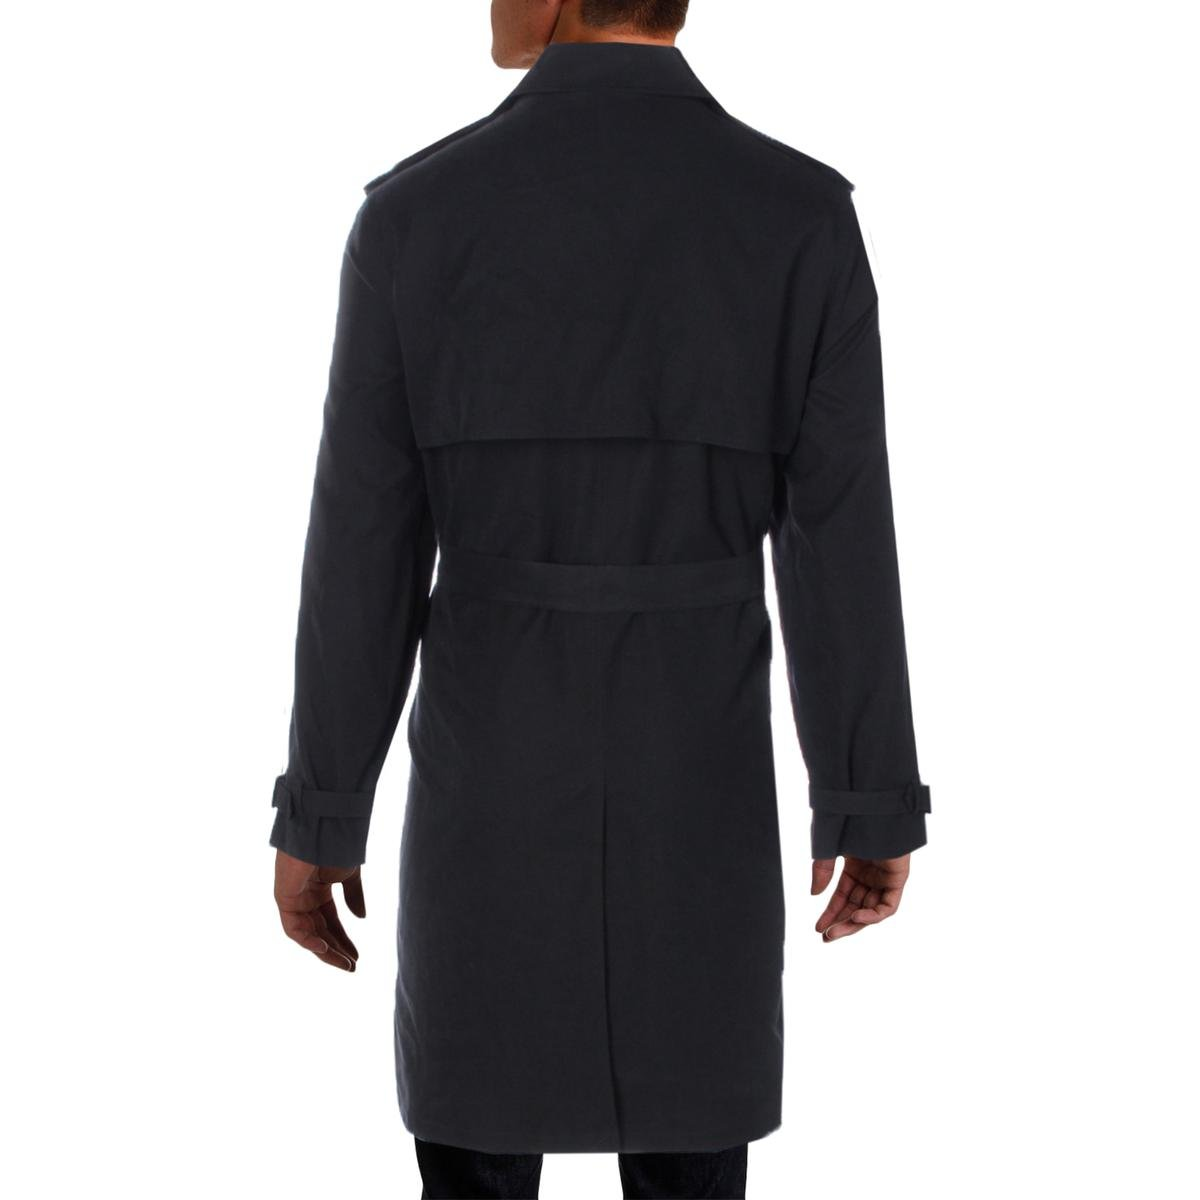 London Fog Mens Plymouth Twill Belted Double-Breasted Iconic Trench Coat